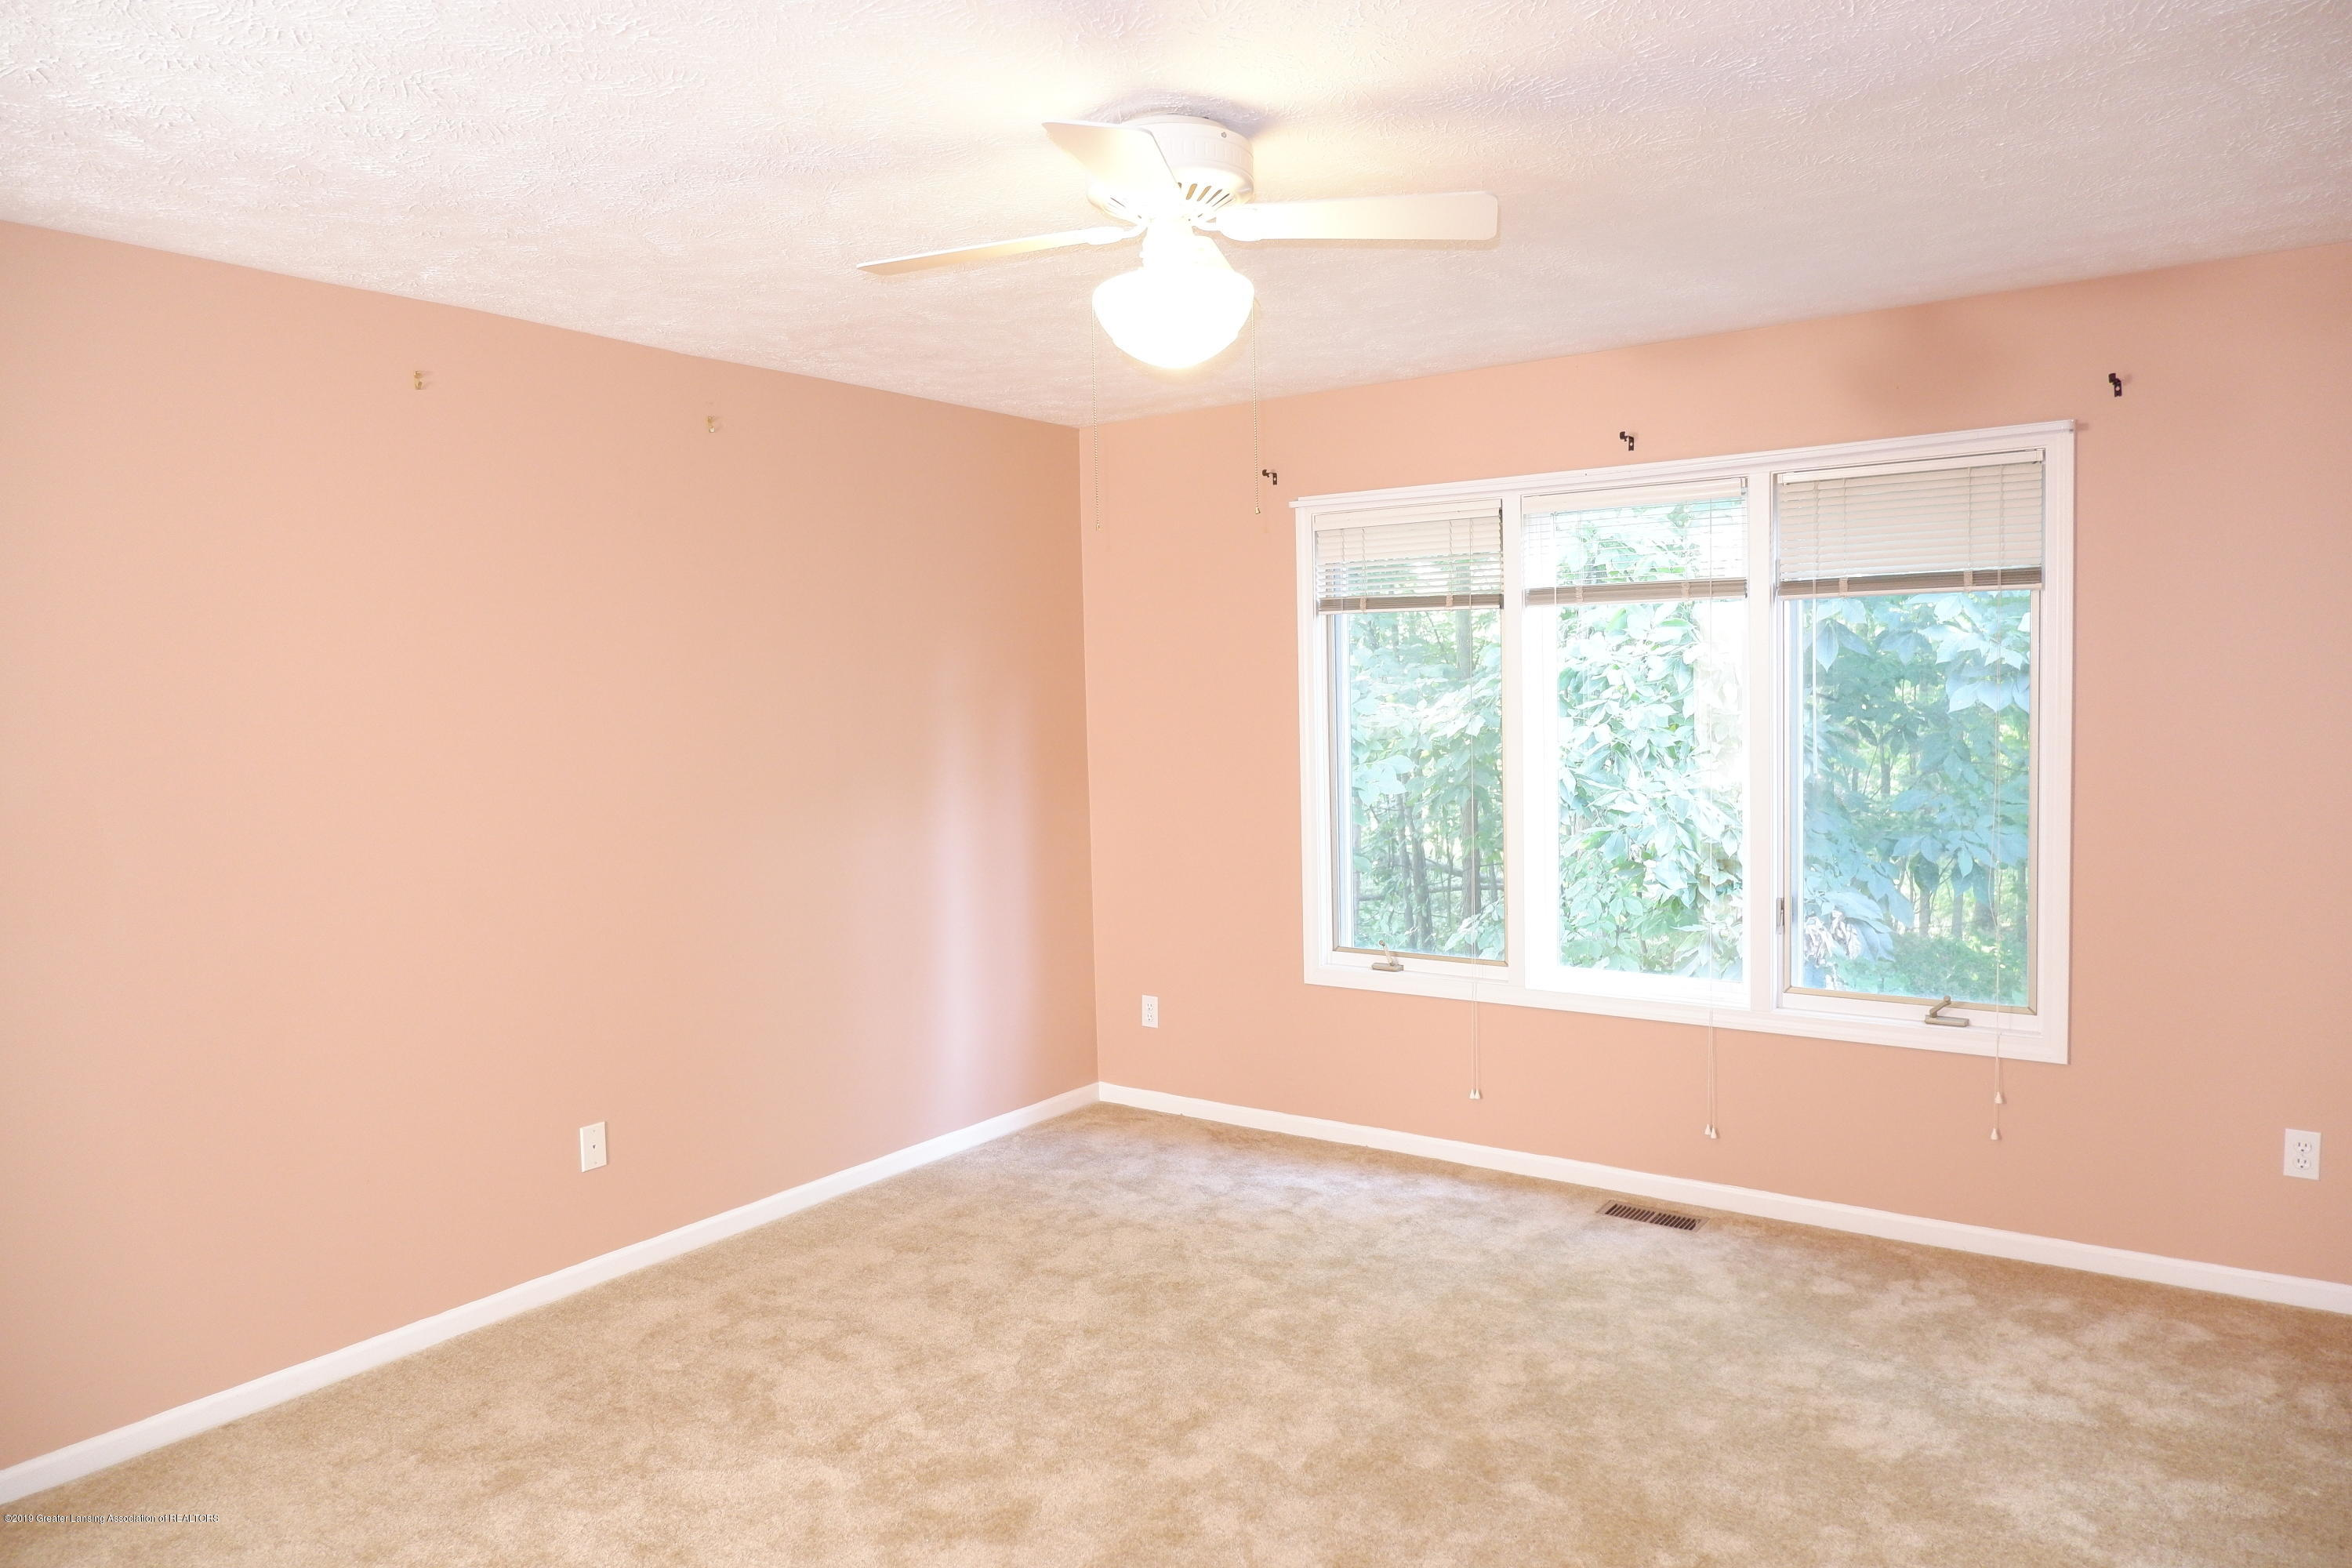 5250 E Hidden Lake Dr 89 - 1st floor master bedroom - 19